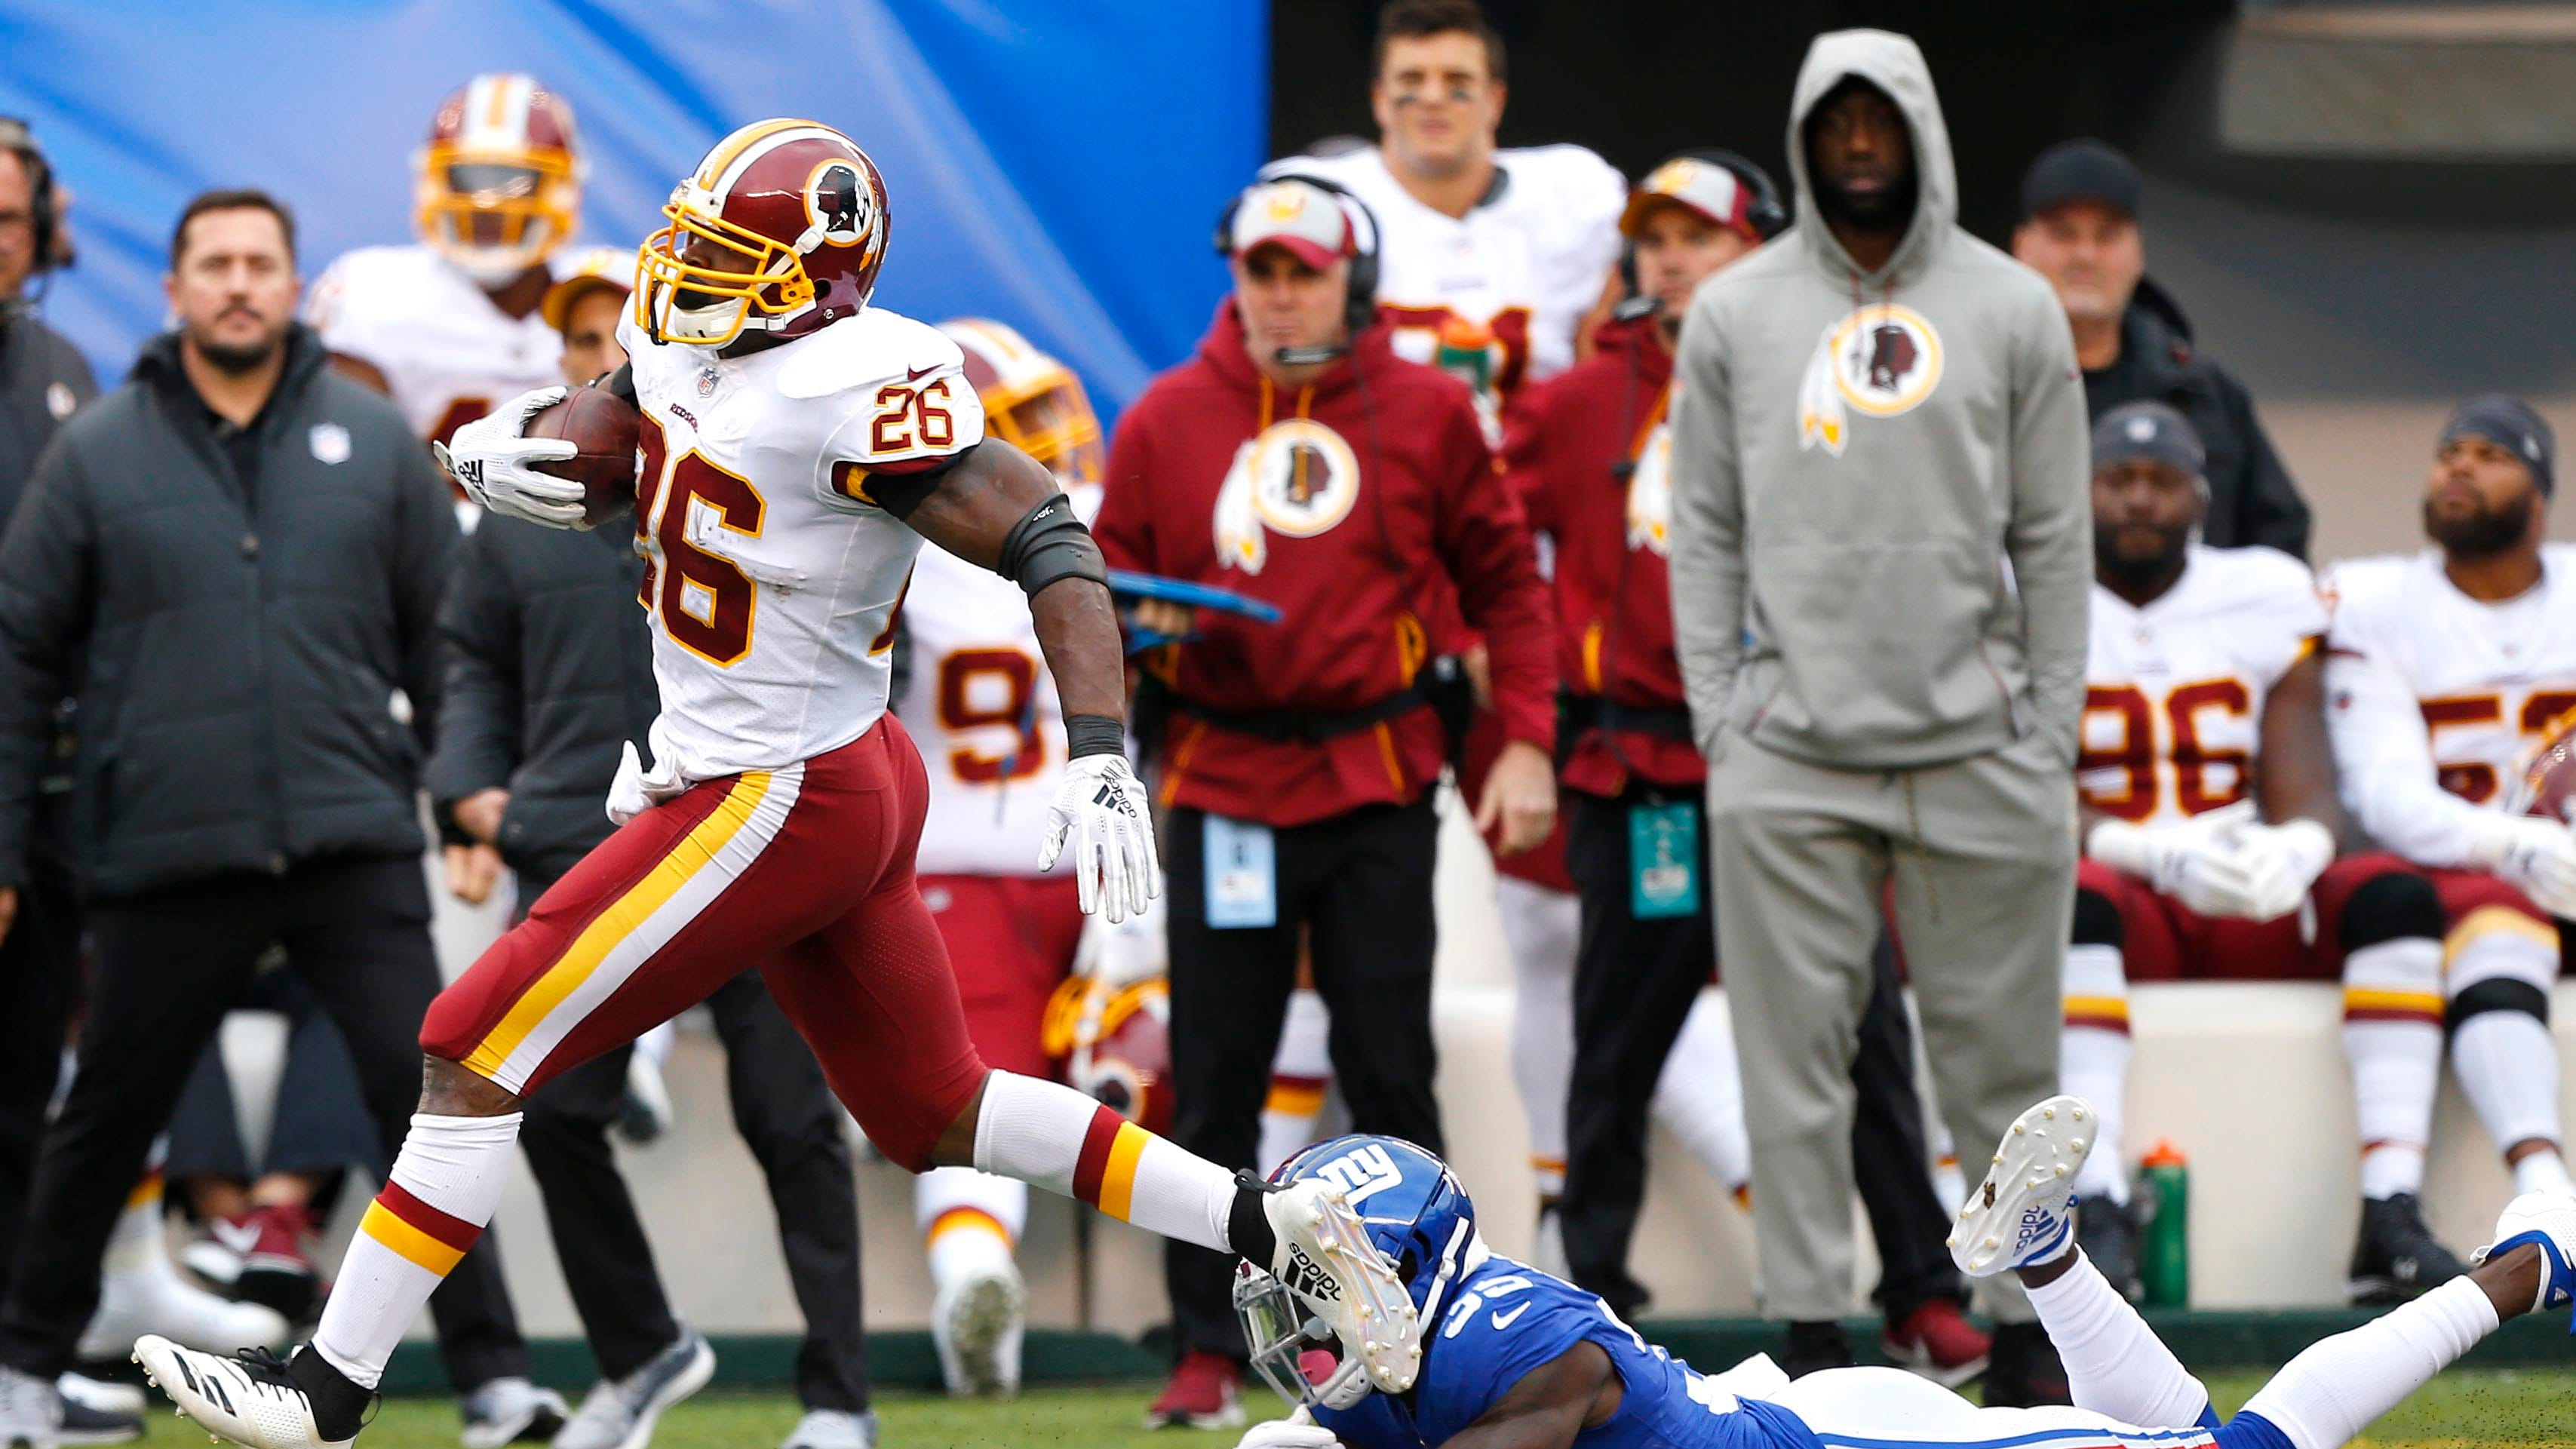 C2bf3534-b8fd-4c7f-b719-9e6015cd6a3c-usp_nfl__washington_redskins_at_new_york_giants